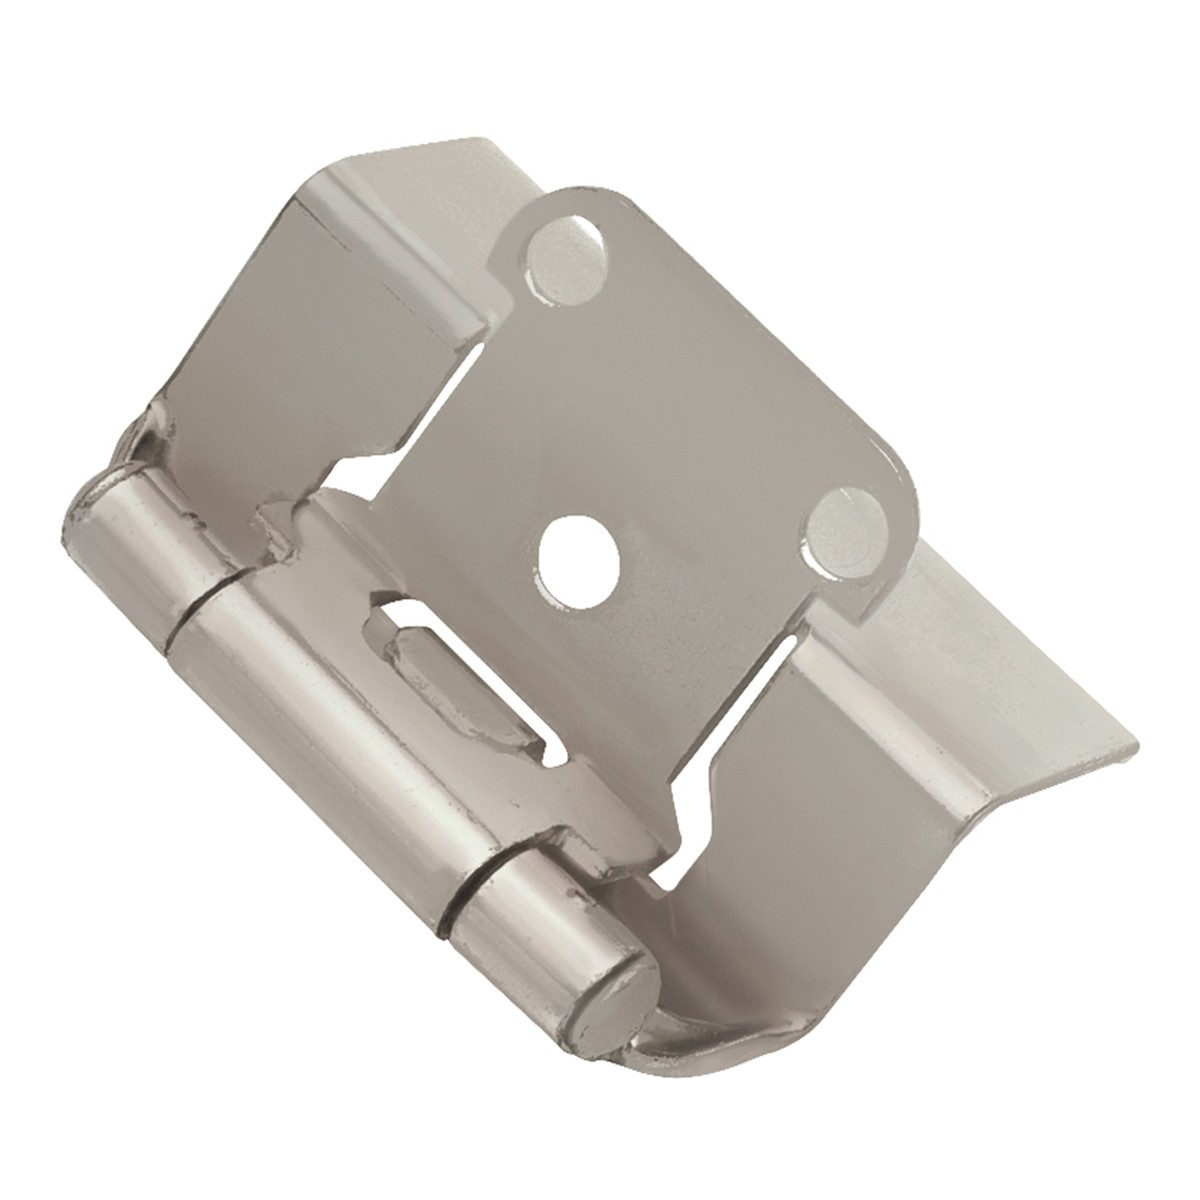 3 8 Offset Cabinet Hinges Face Frame Hinge Satin Nickel 1 2 Overlay P5710f Sn Hickory